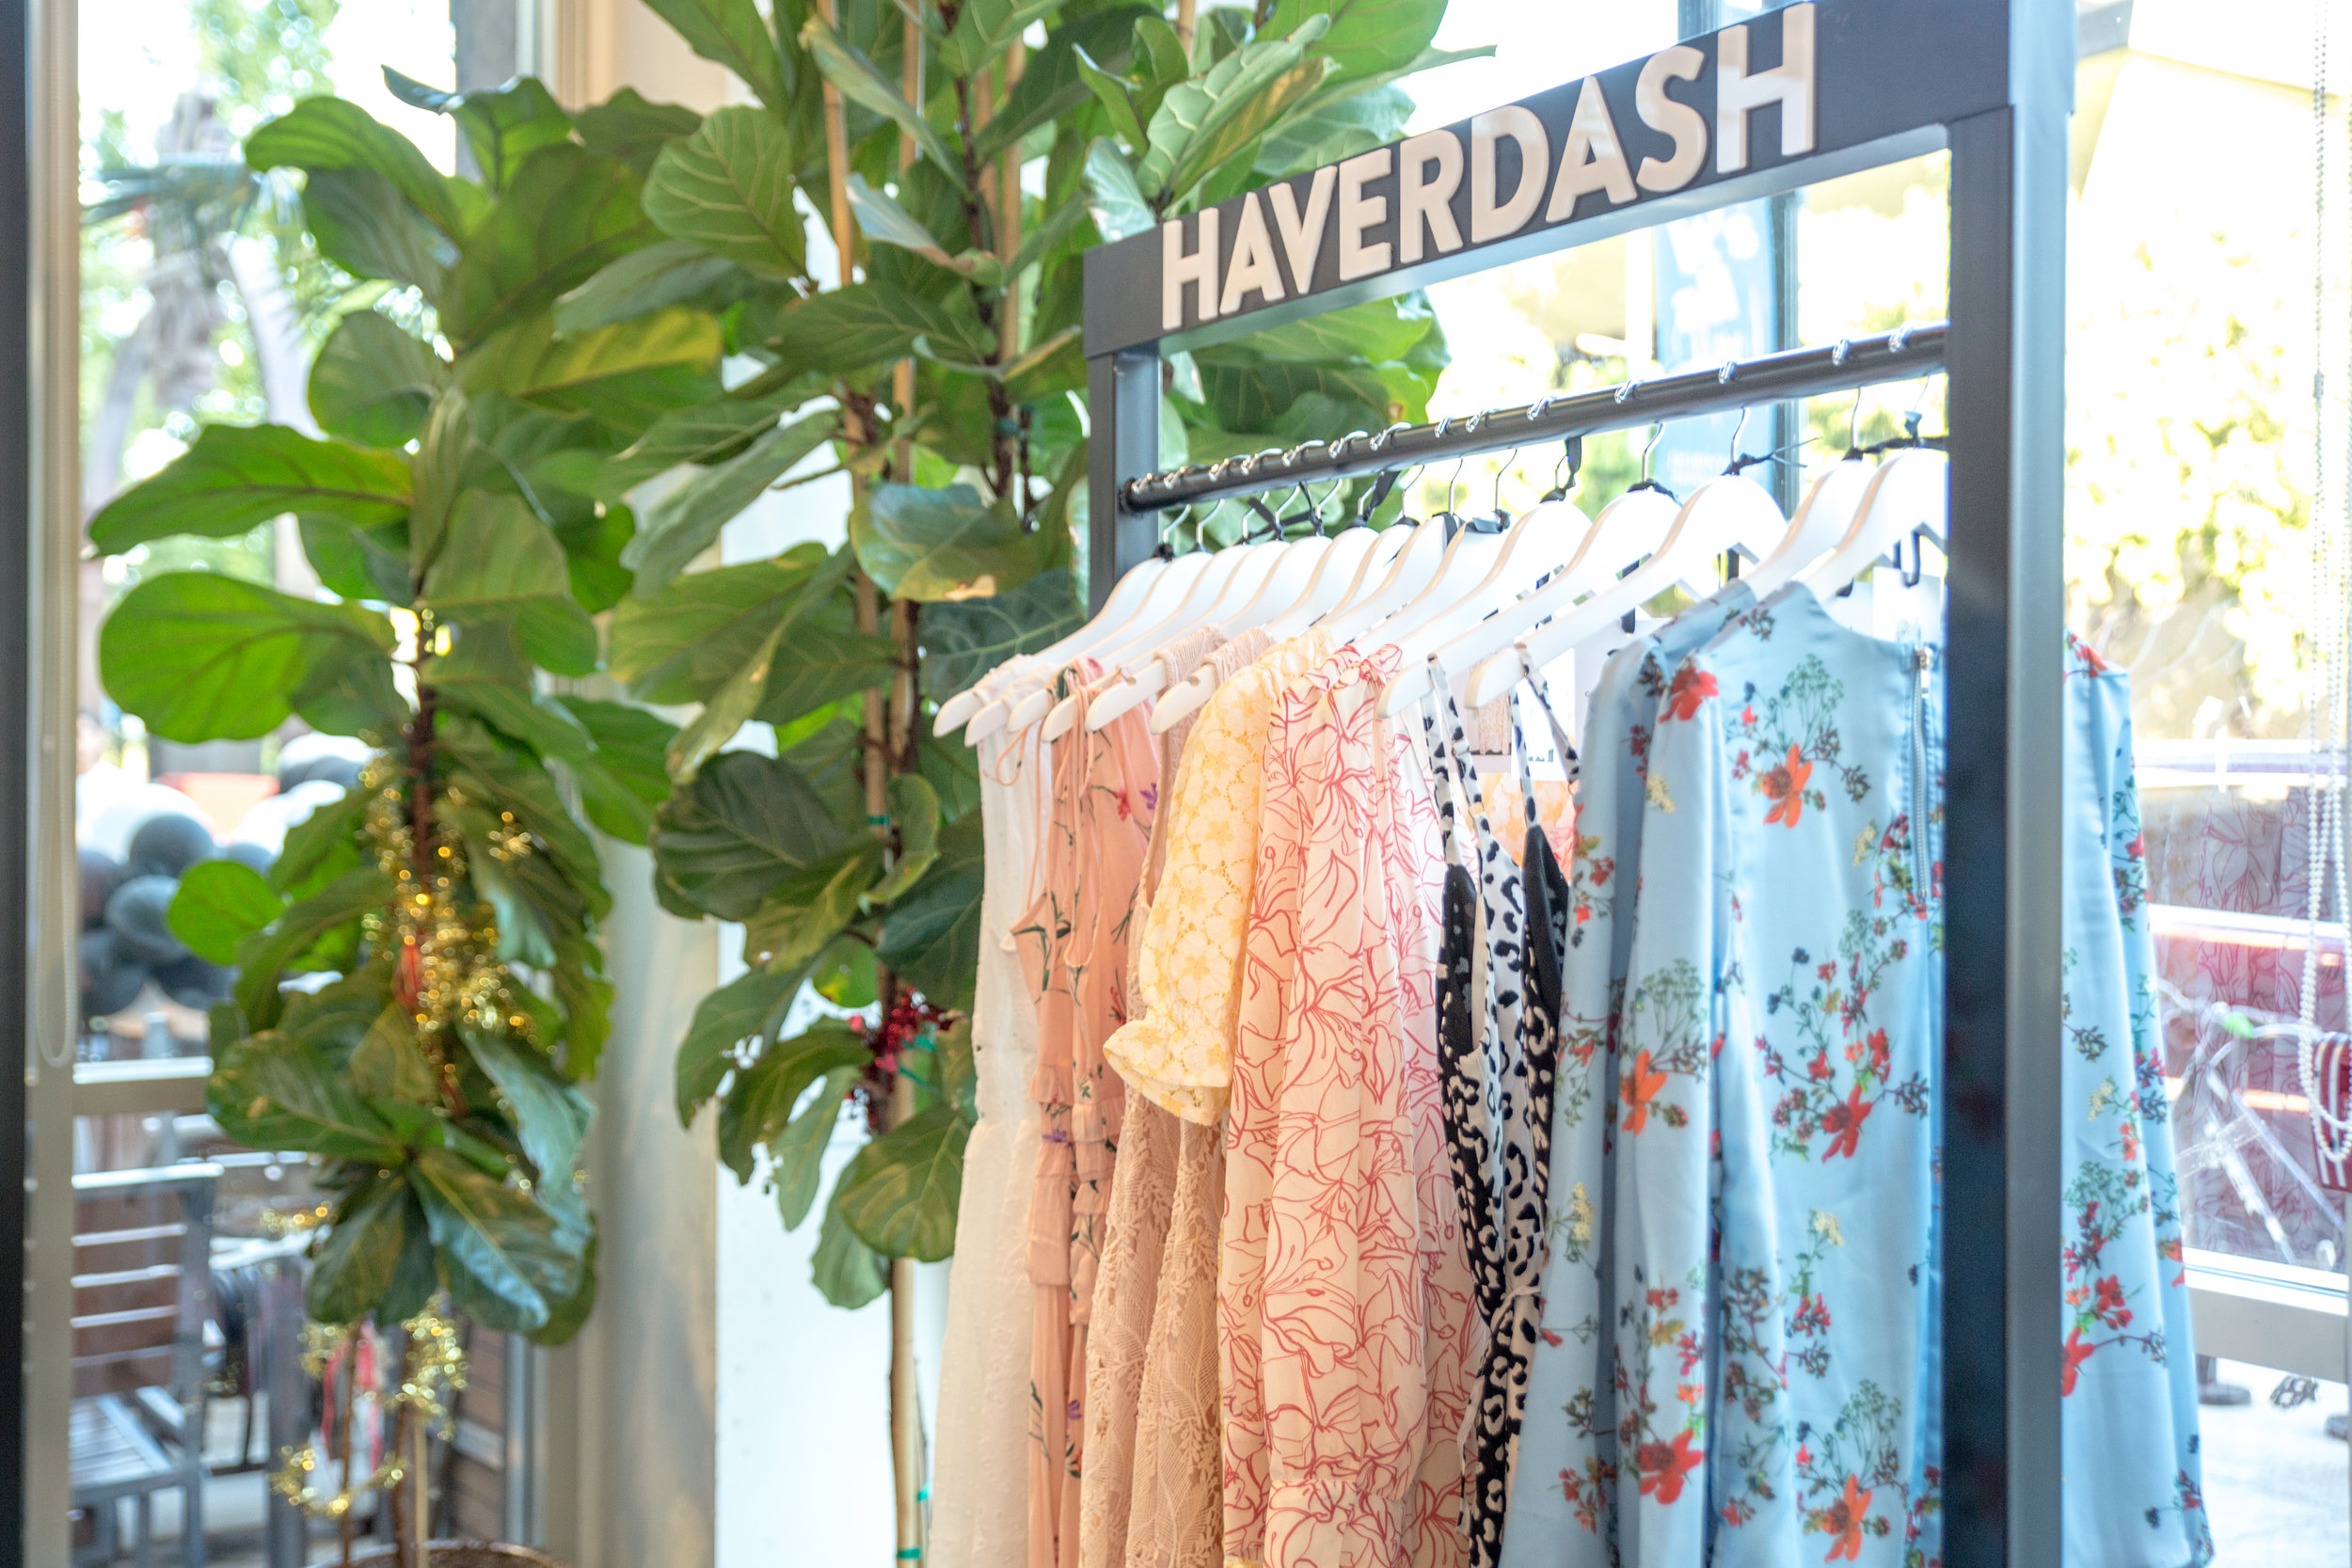 Haverdash Pop-Up Events - Pop-up events with corporate partners to celebrate Haverdash's launch